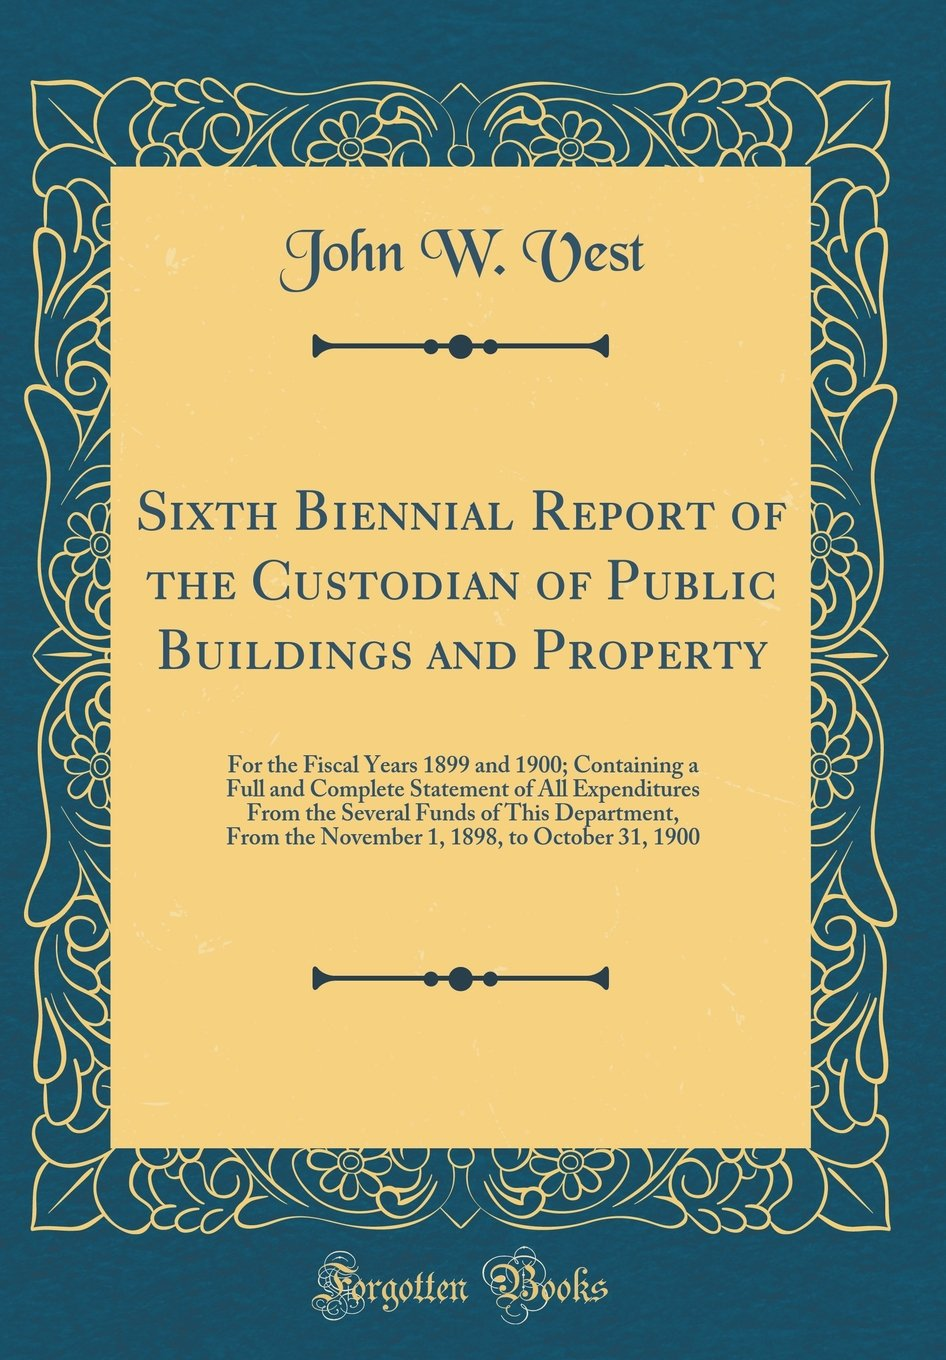 Sixth Biennial Report of the Custodian of Public Buildings and Property: For the Fiscal Years 1899 and 1900; Containing a Full and Complete Statement ... from the November 1, 1898, to October 31, pdf